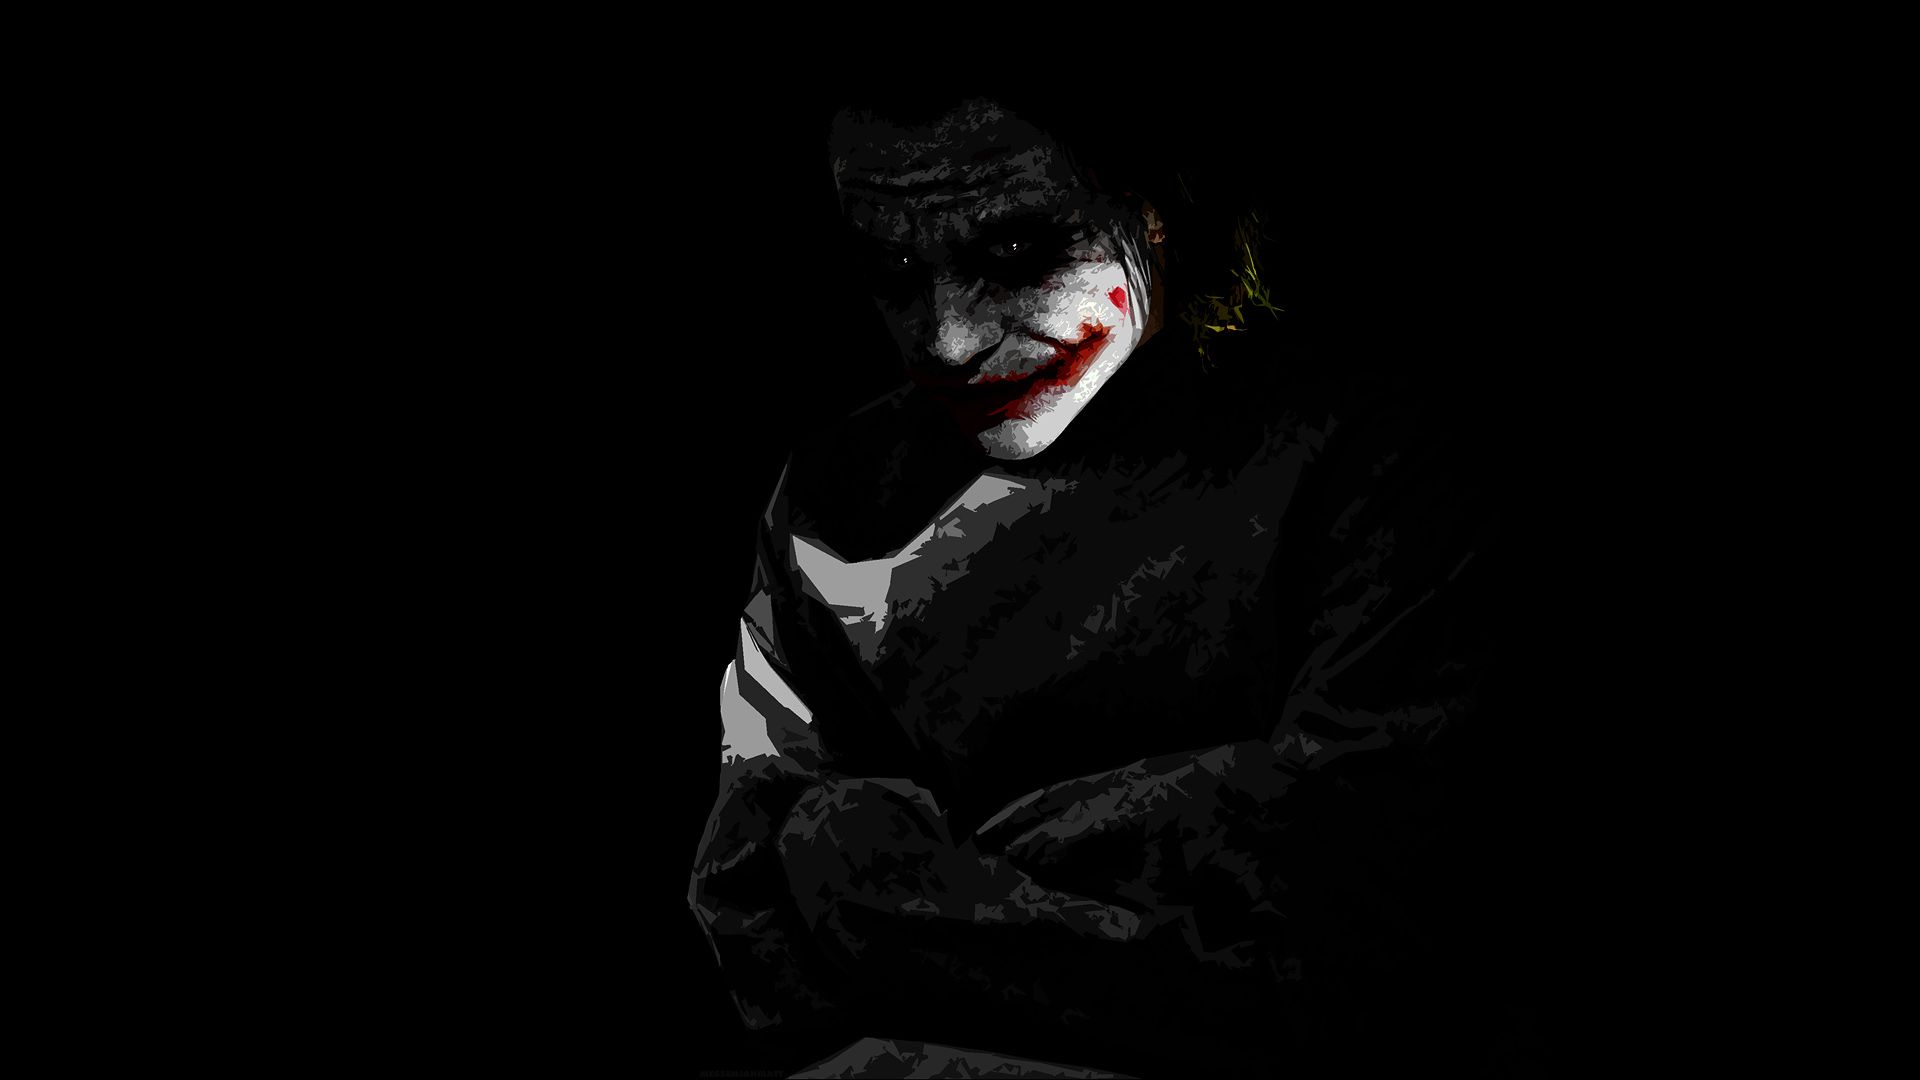 Joker HD Wallpapers Free Download